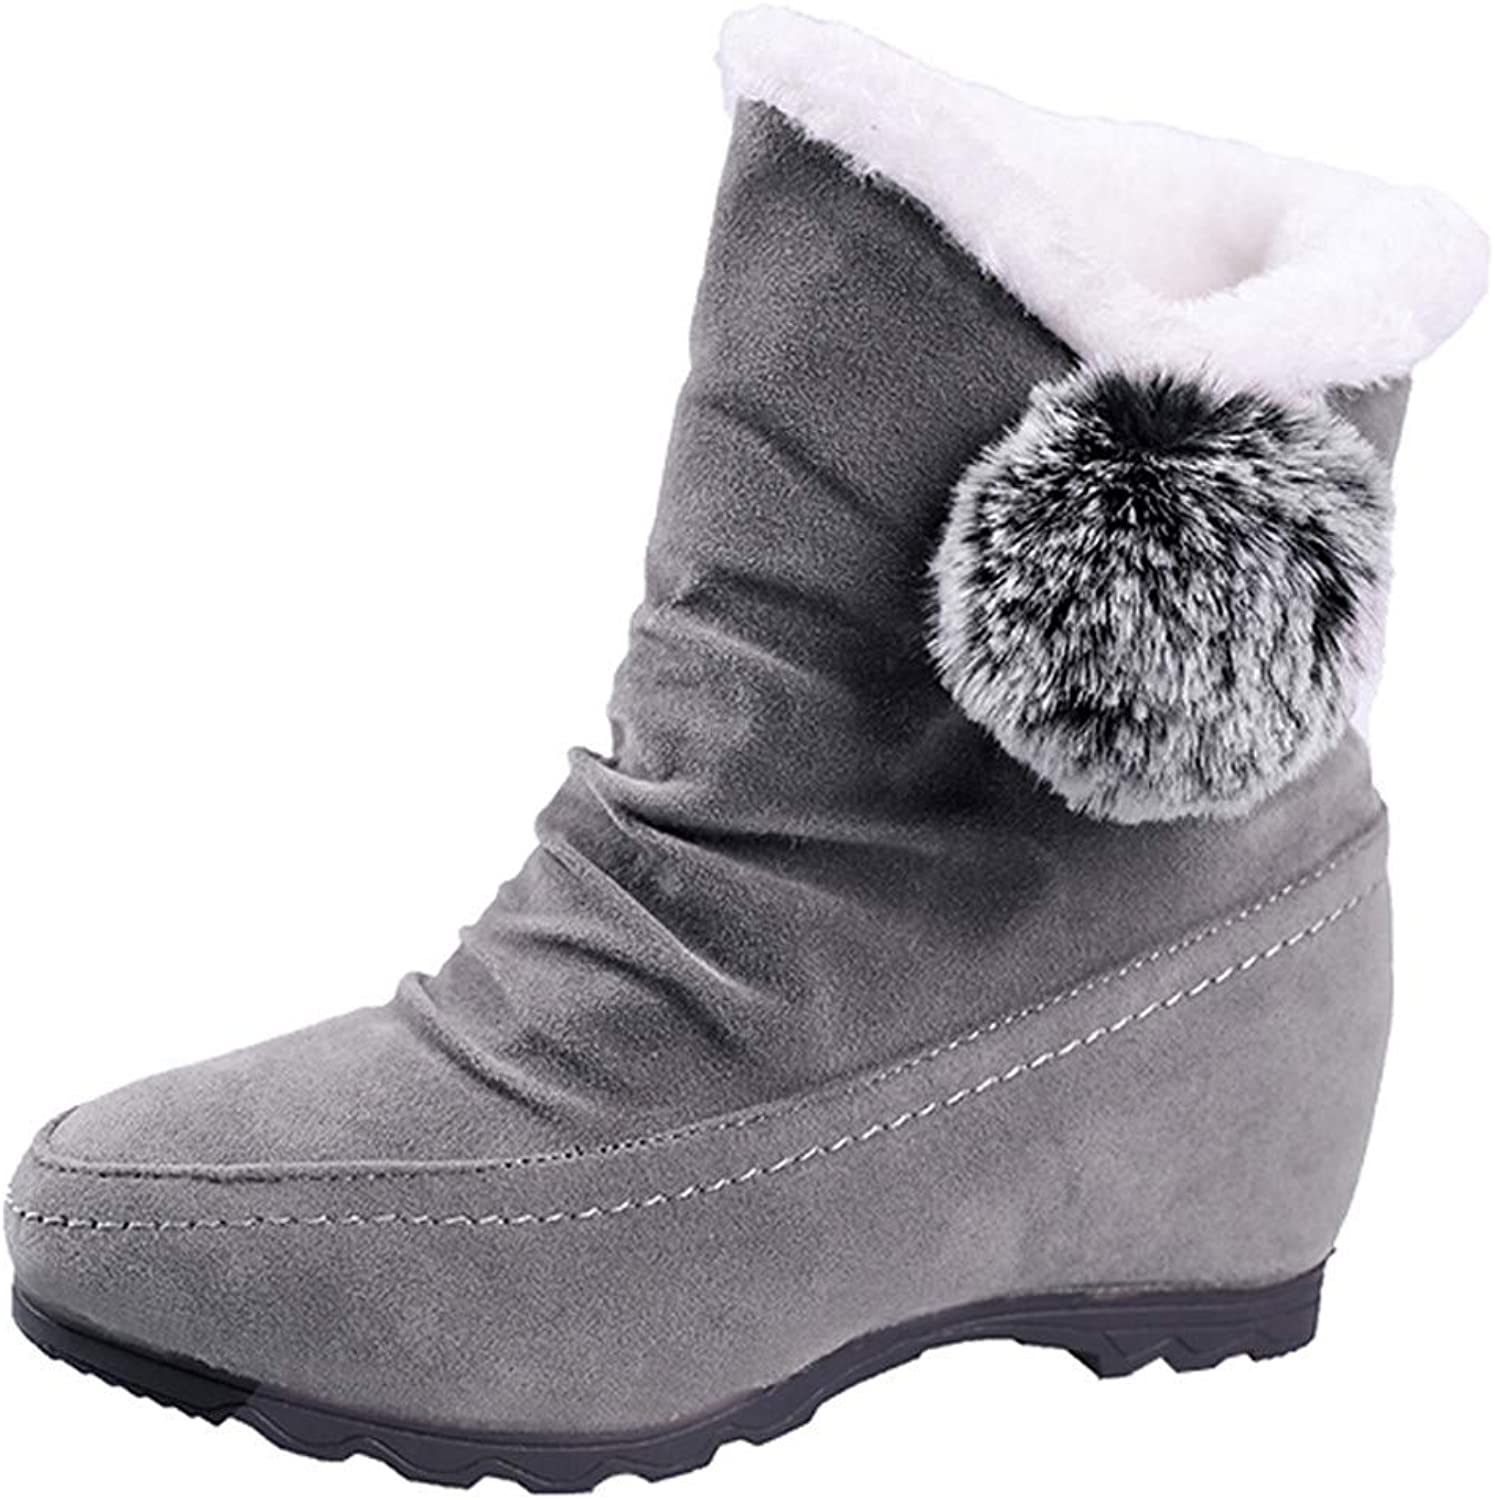 JaHGDU Women Suede Hairball Round Toe Wedges shoes Fashion Keep Warm Slip On Snow Boots Leisure Elegant Cosy Wild Tight Super Casual Quality for Womens